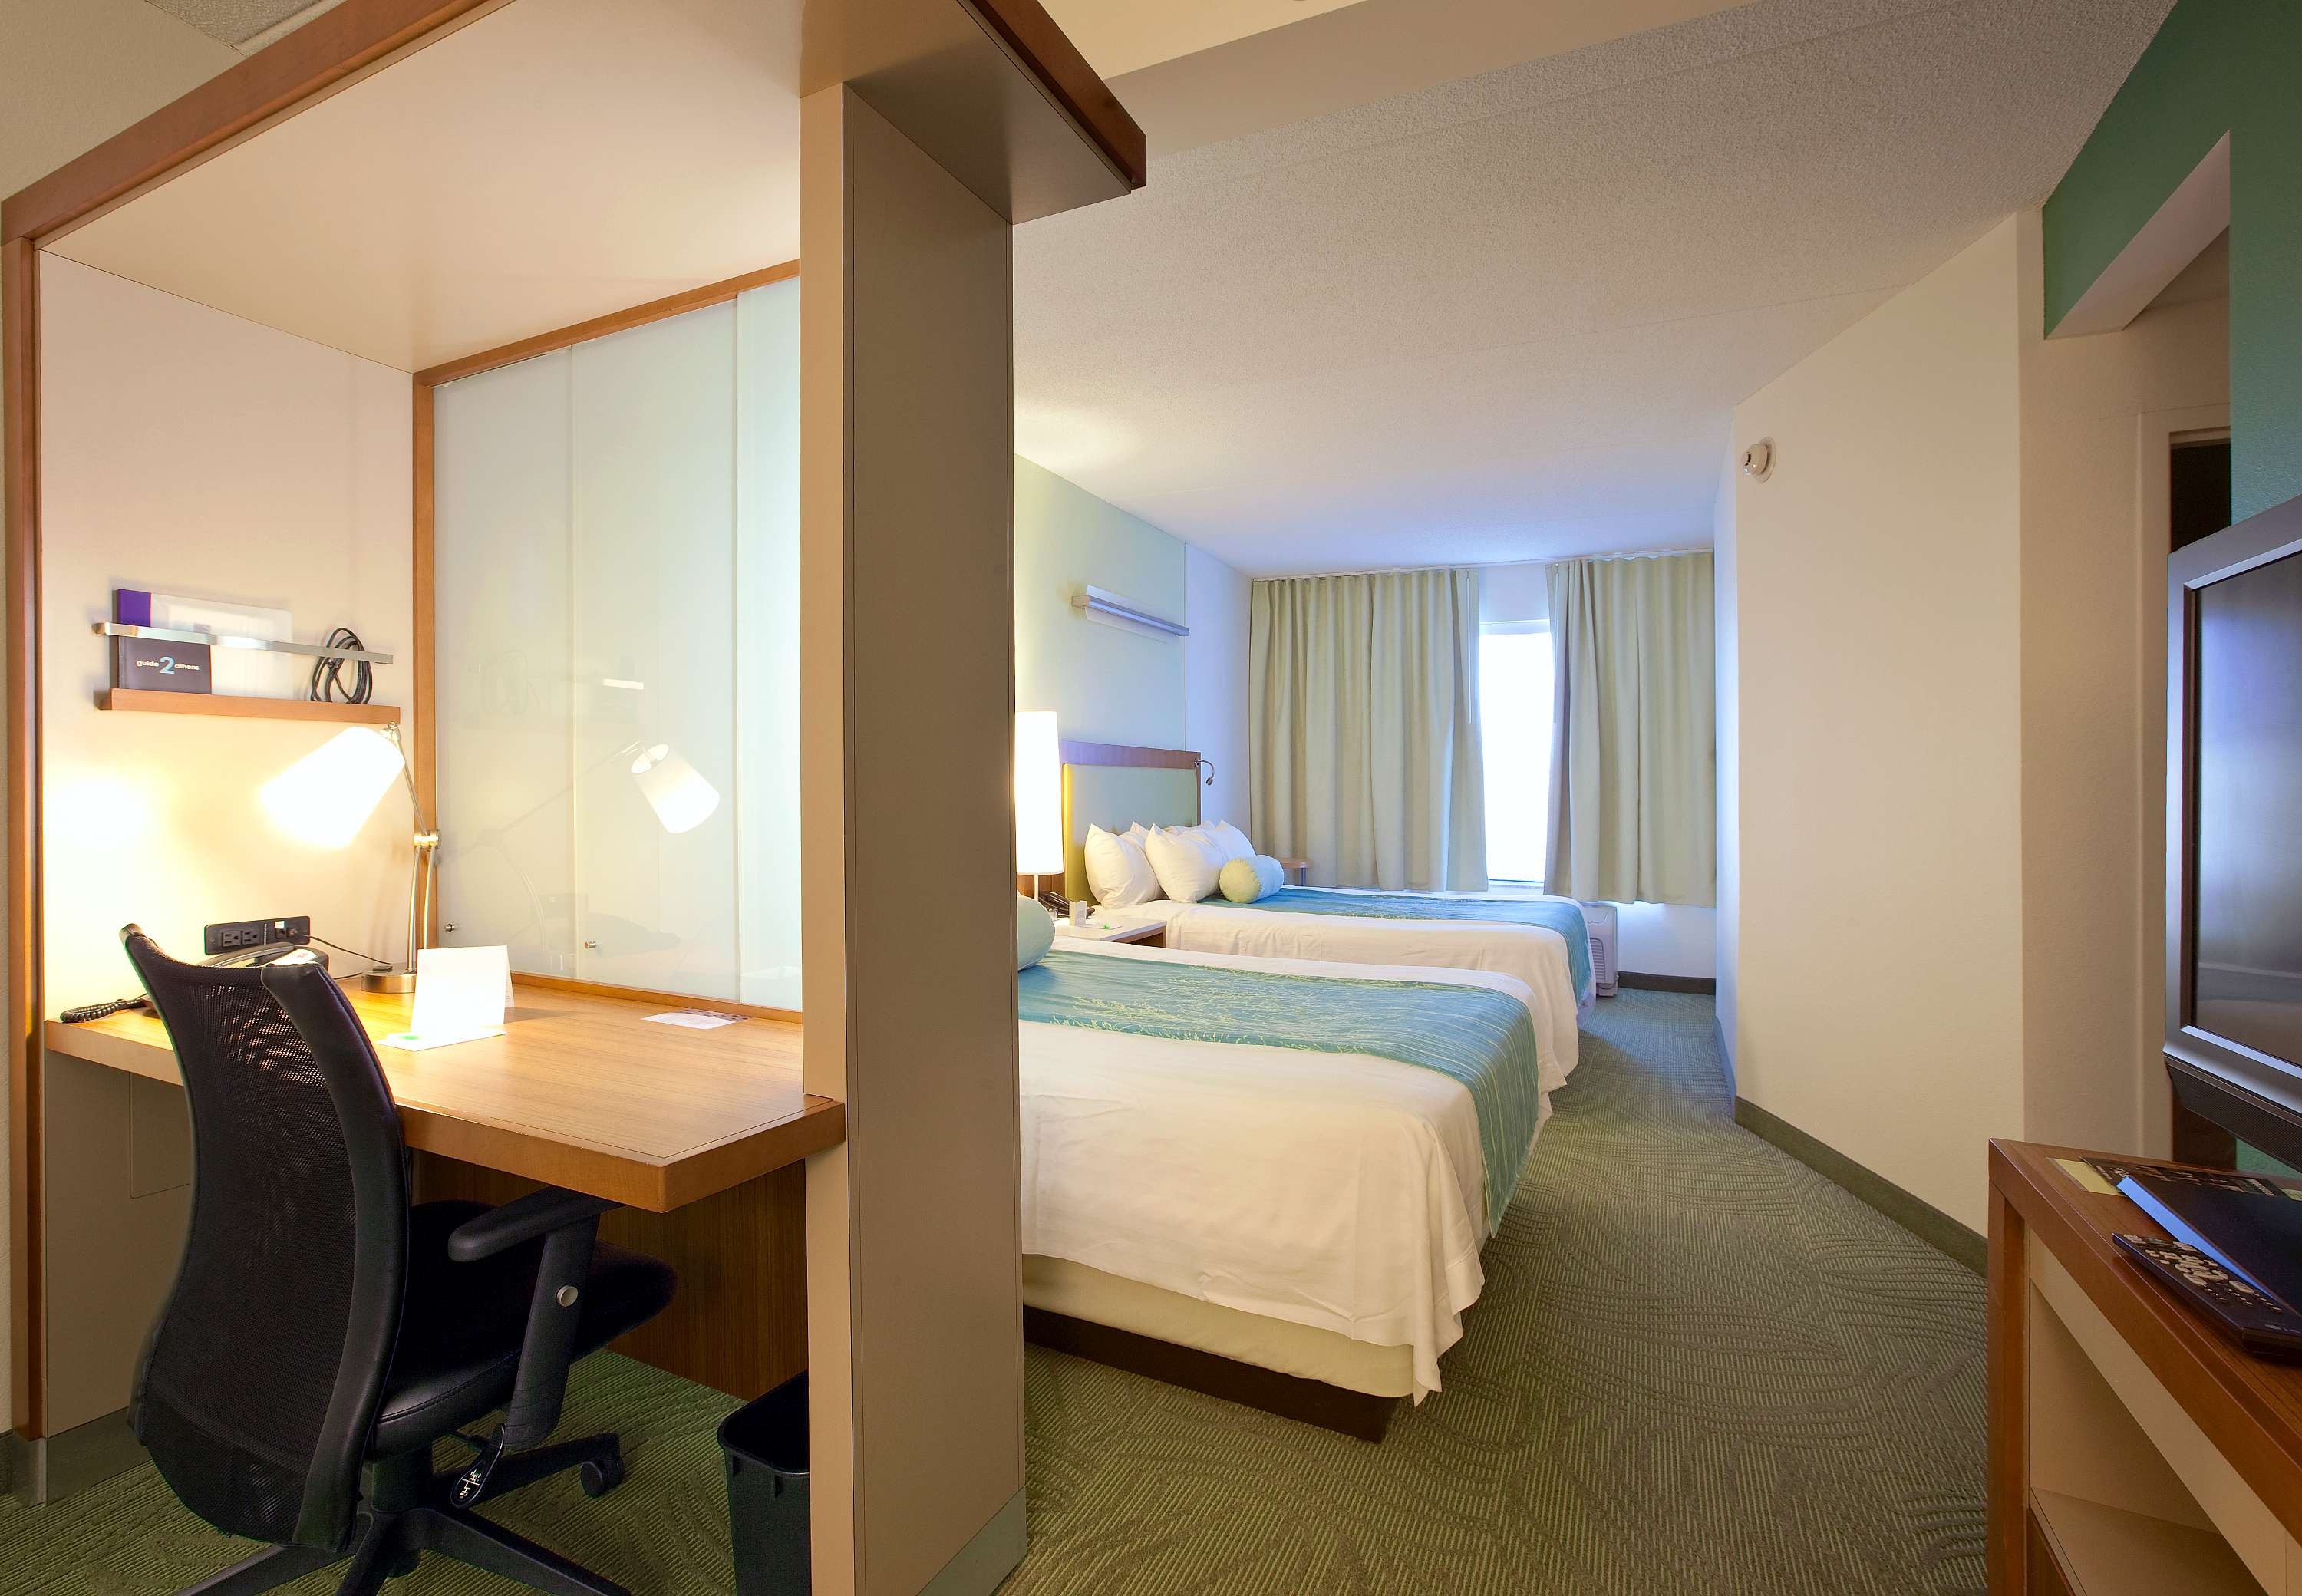 SpringHill Suites by Marriott Athens West image 5